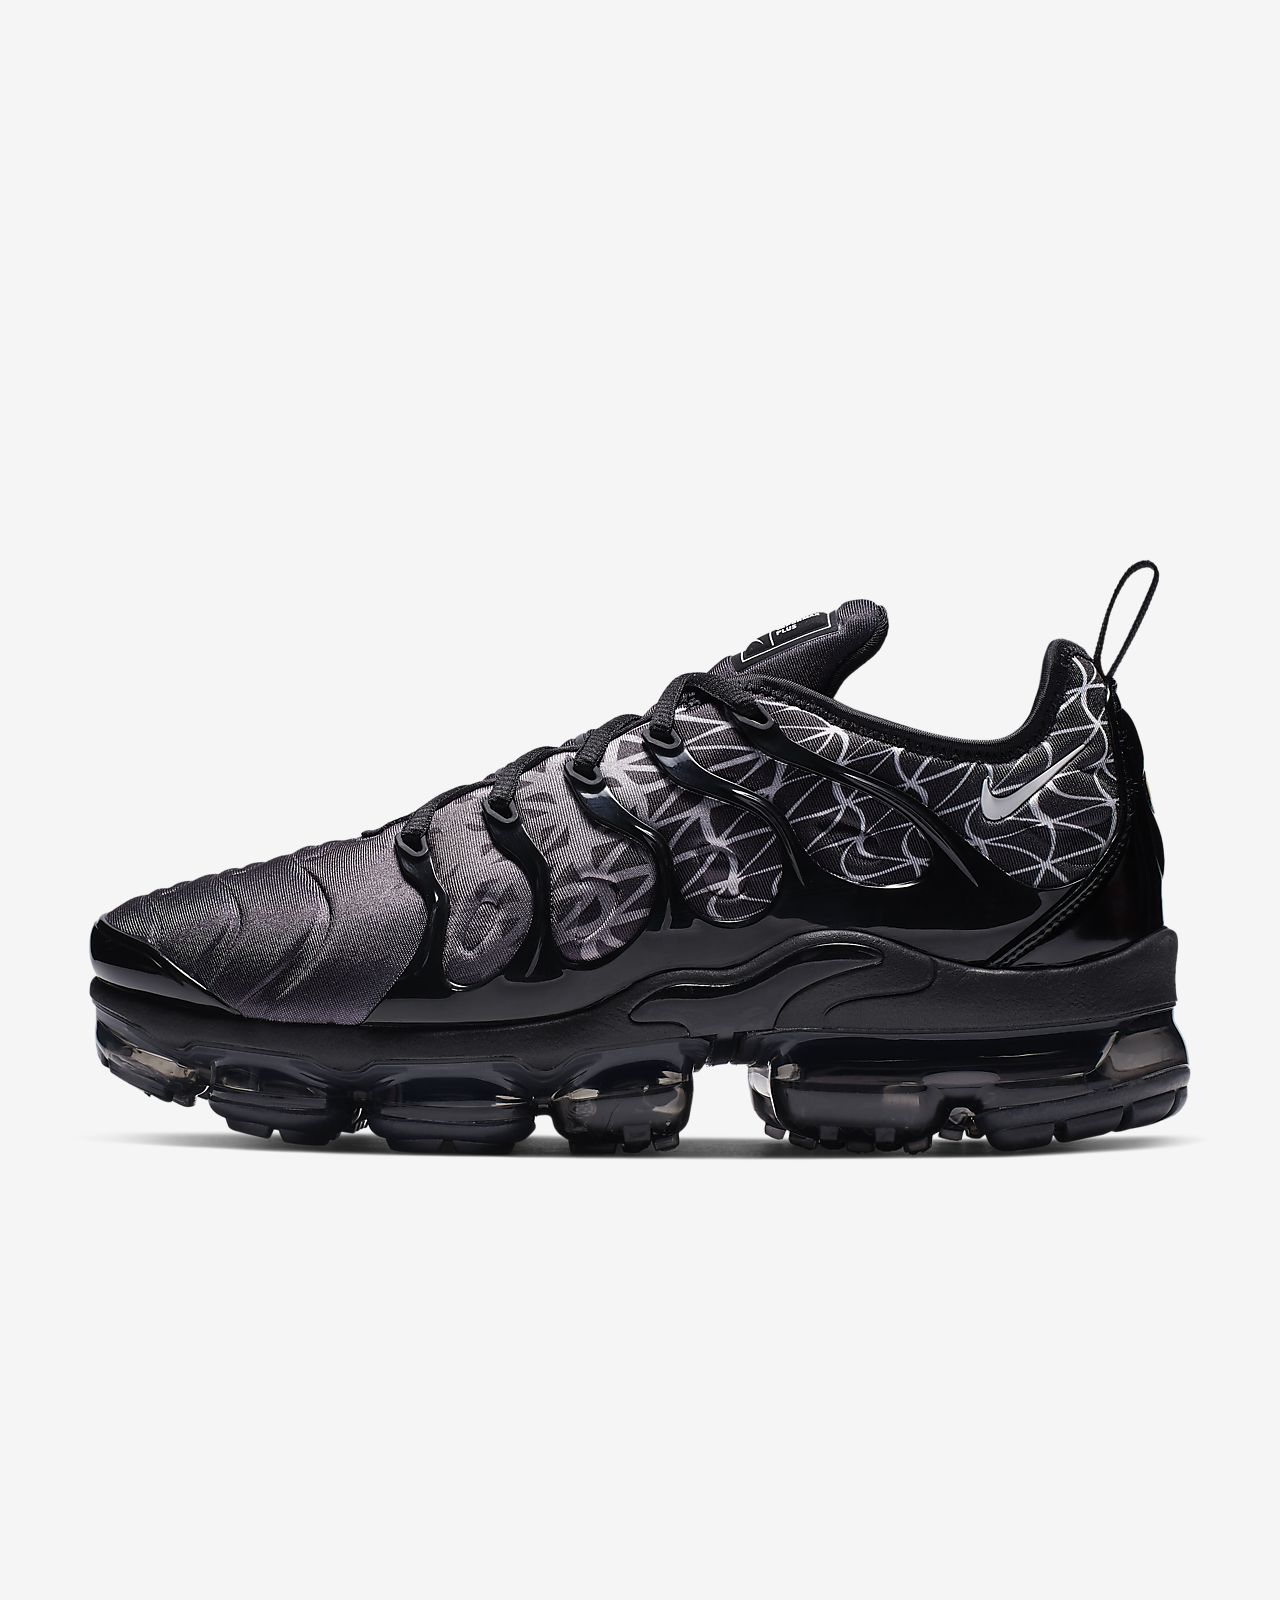 c80508a9f5b42 Nike Air VaporMax Plus Men s Shoe. Nike.com GB